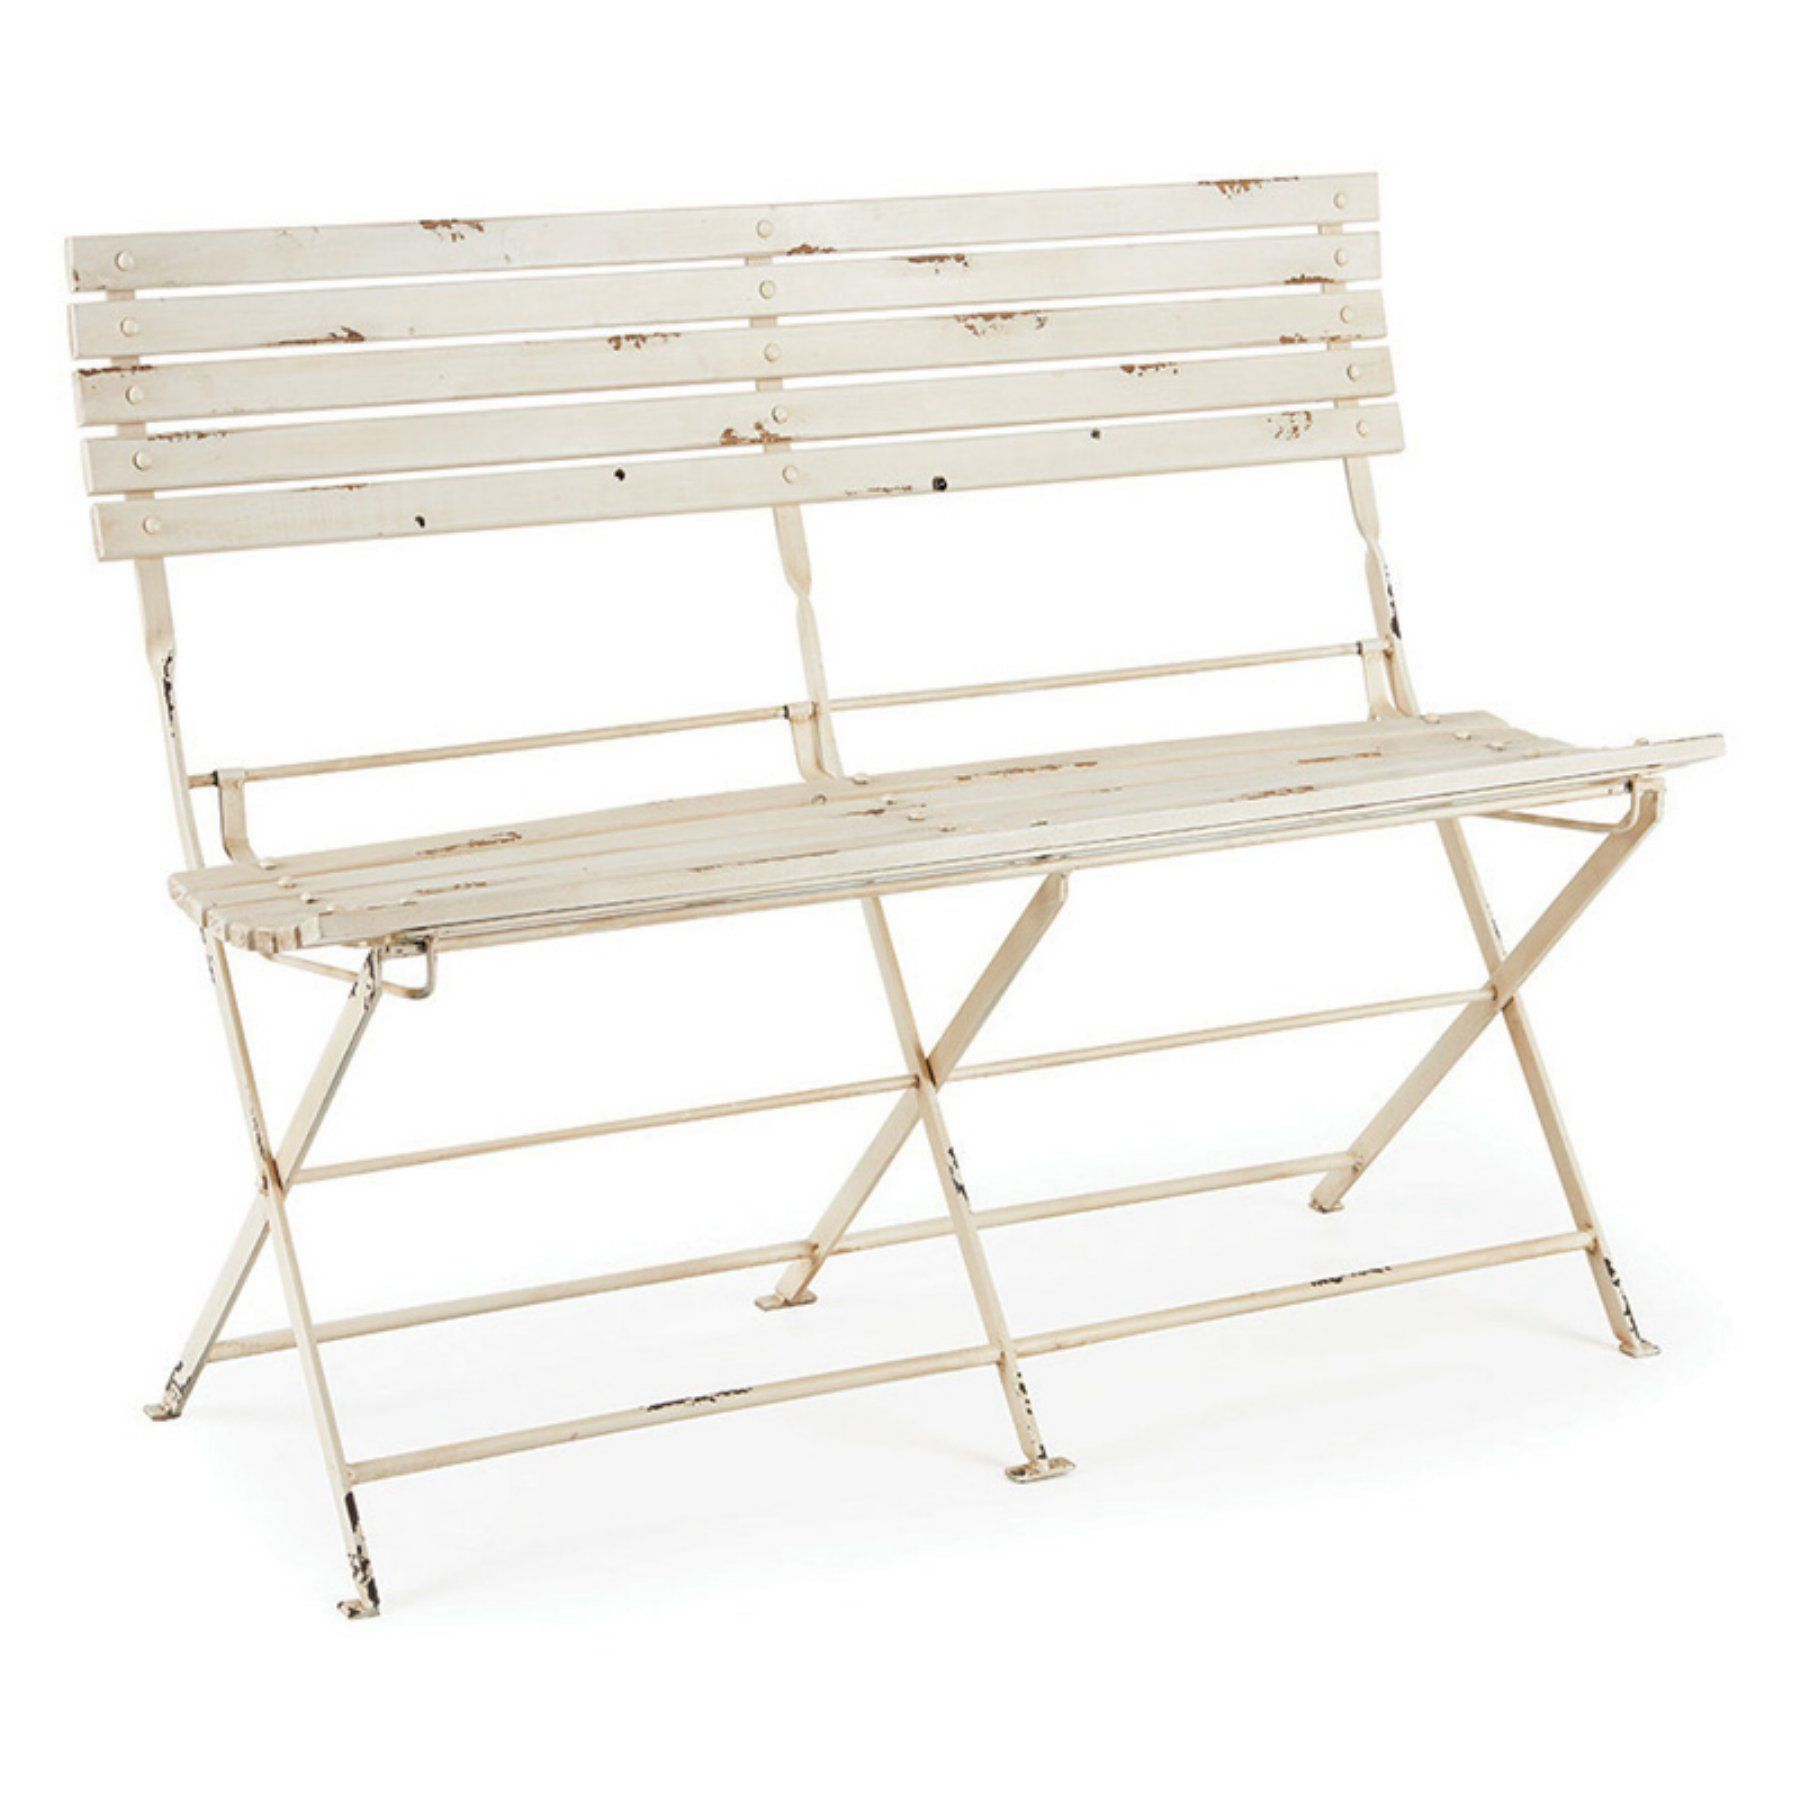 Outdoor Napa Home and Garden Bistro 50 in. Metal Folding Garden Bench in Distressed White - KN212